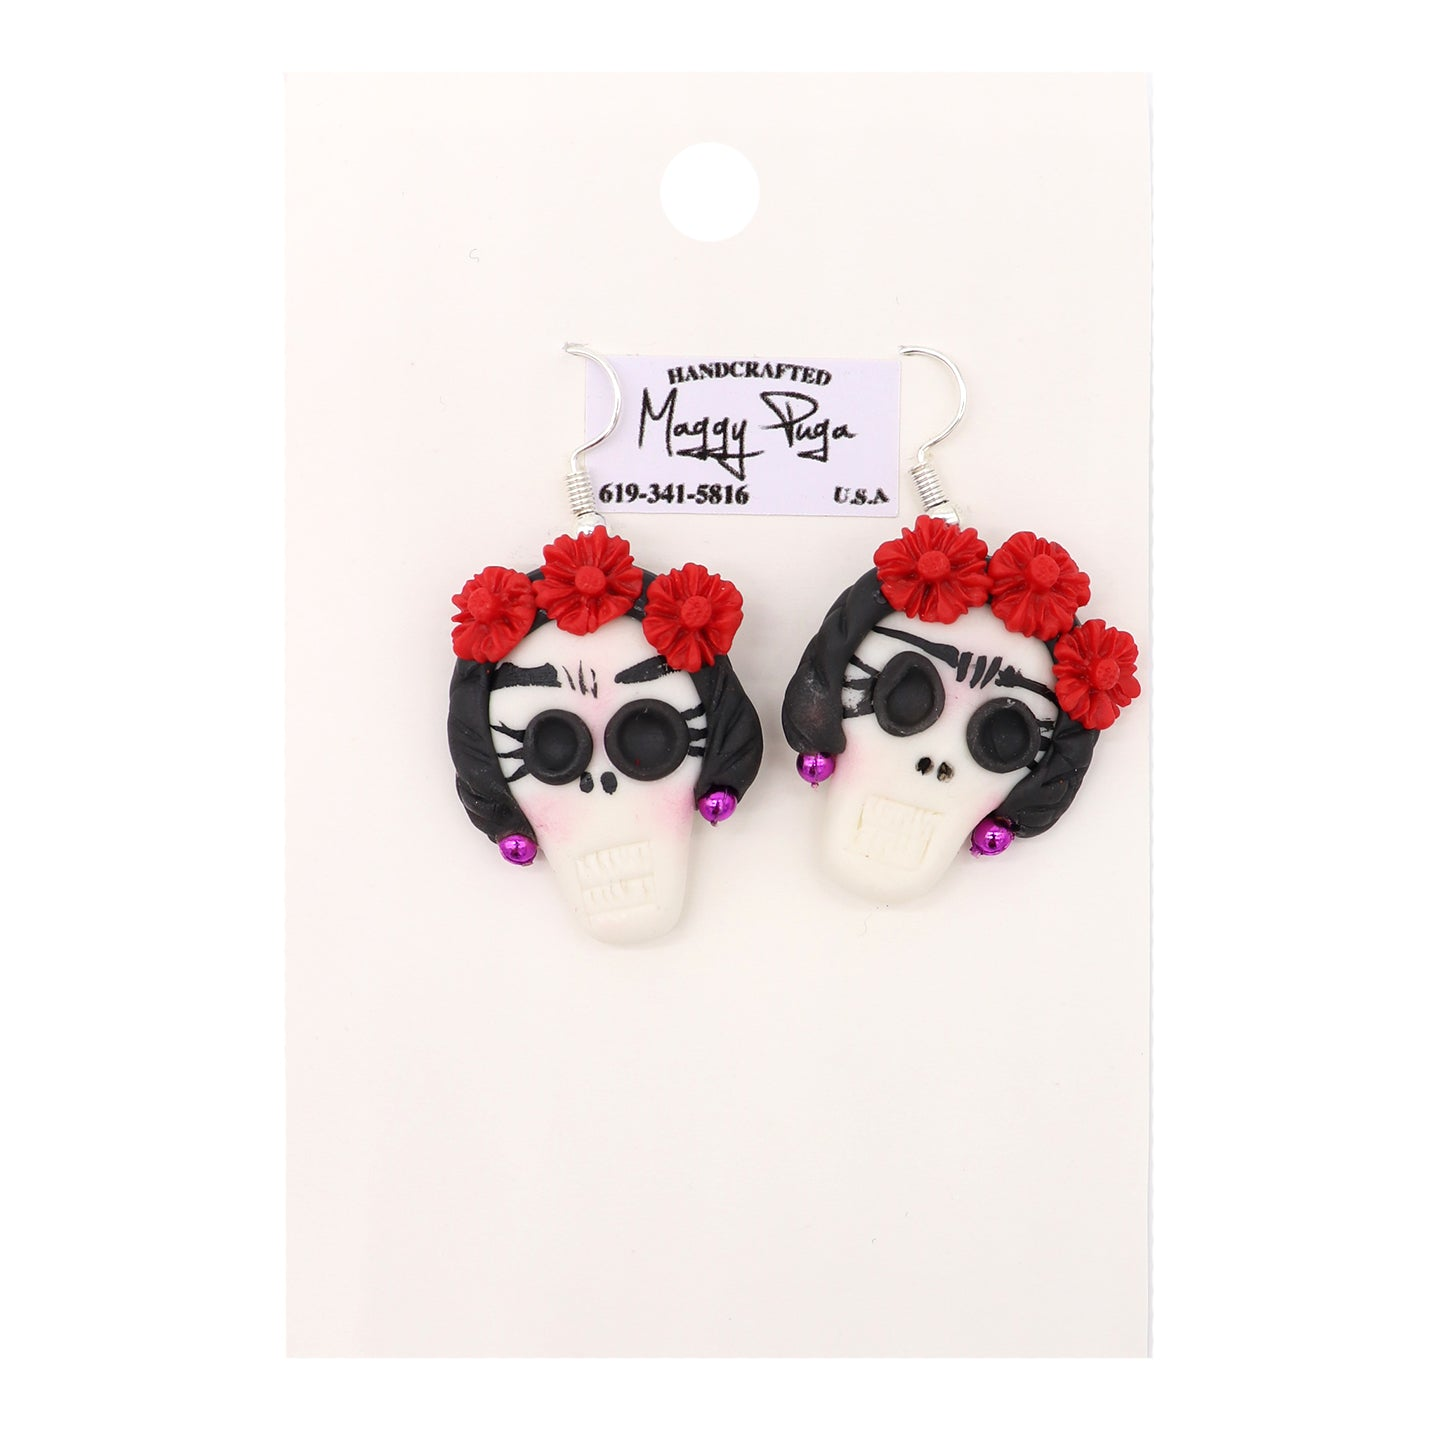 Sugar Skull Earrings handmade featuring Frida Kahlo, Mexicnan Painter. Handcrafted by small shop Maggy Puga. White skulls with dark hair, unibrow, colorful red flowers, and purple earrings. Sold by SDTrading Co.